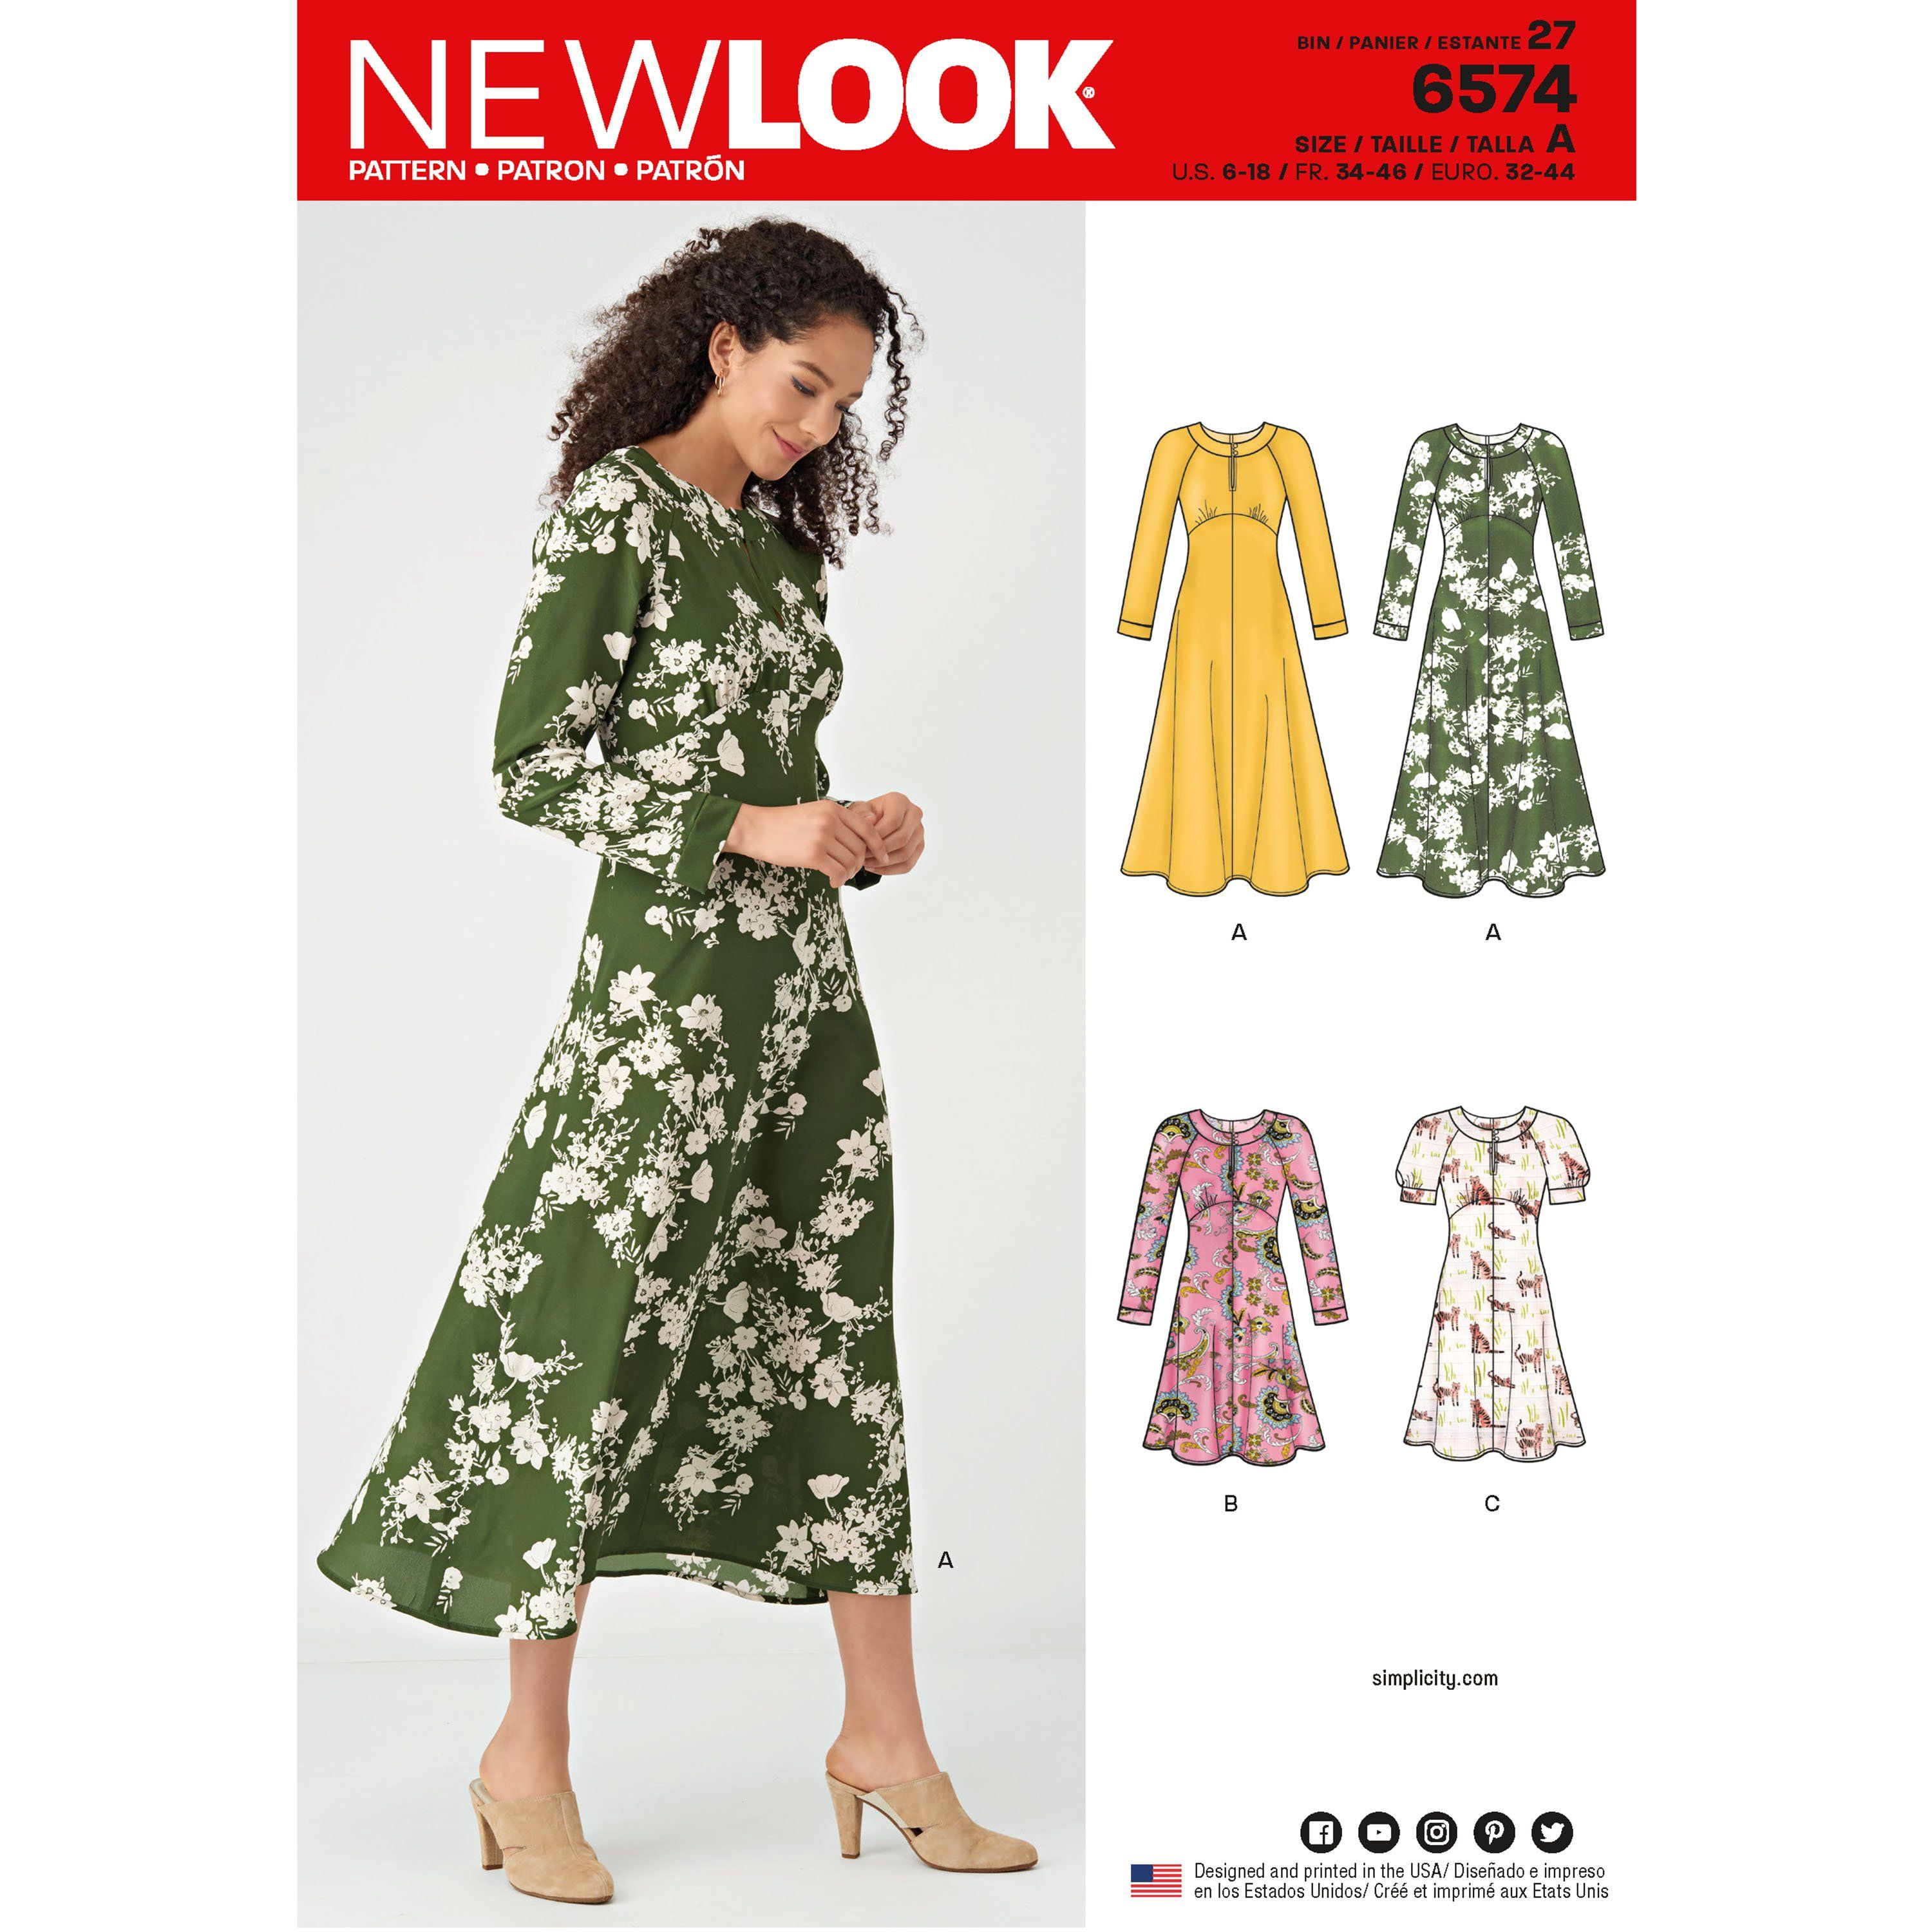 New Look Sewing Pattern 6574 Misses' Dresses